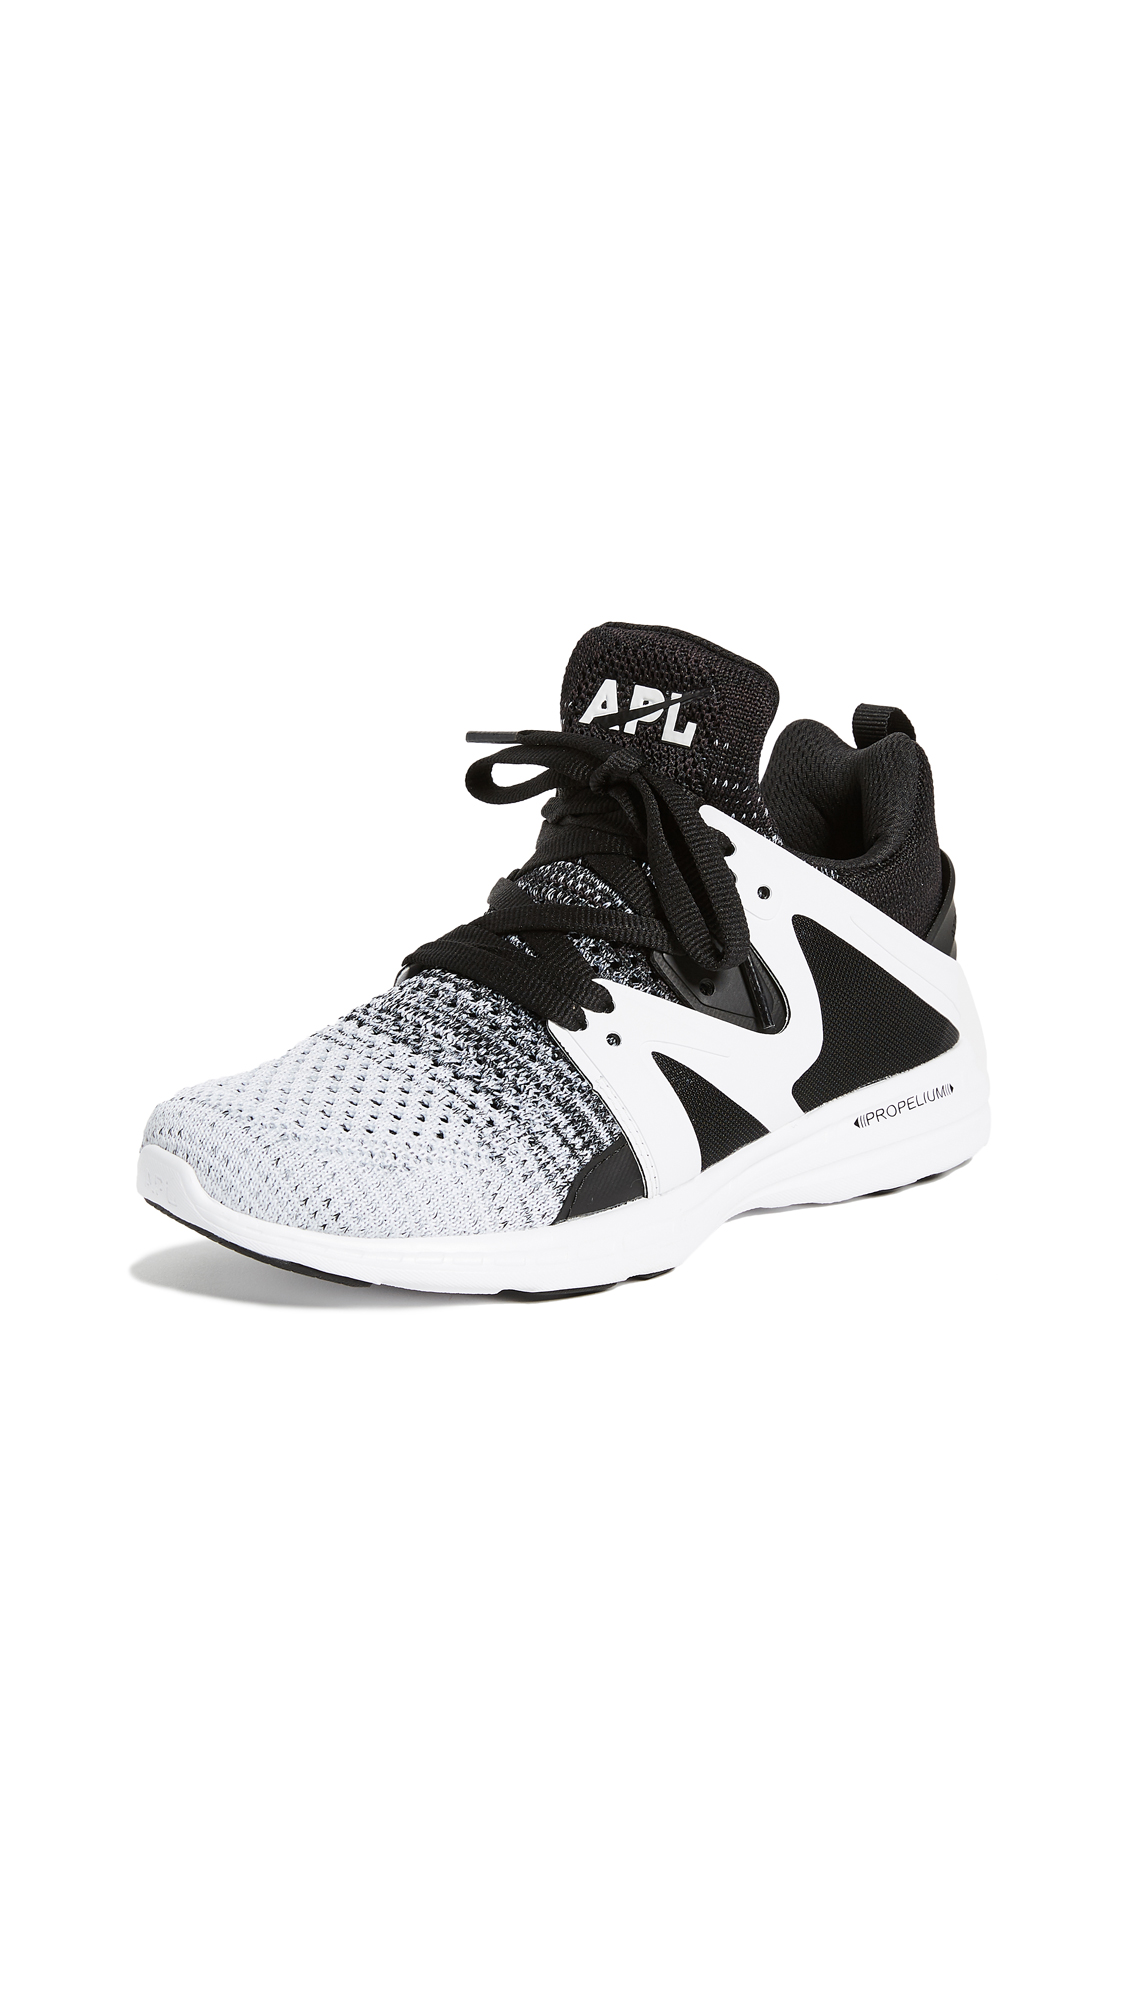 APL: Athletic Propulsion Labs Ascend Sneakers - Black/Heather Grey/White